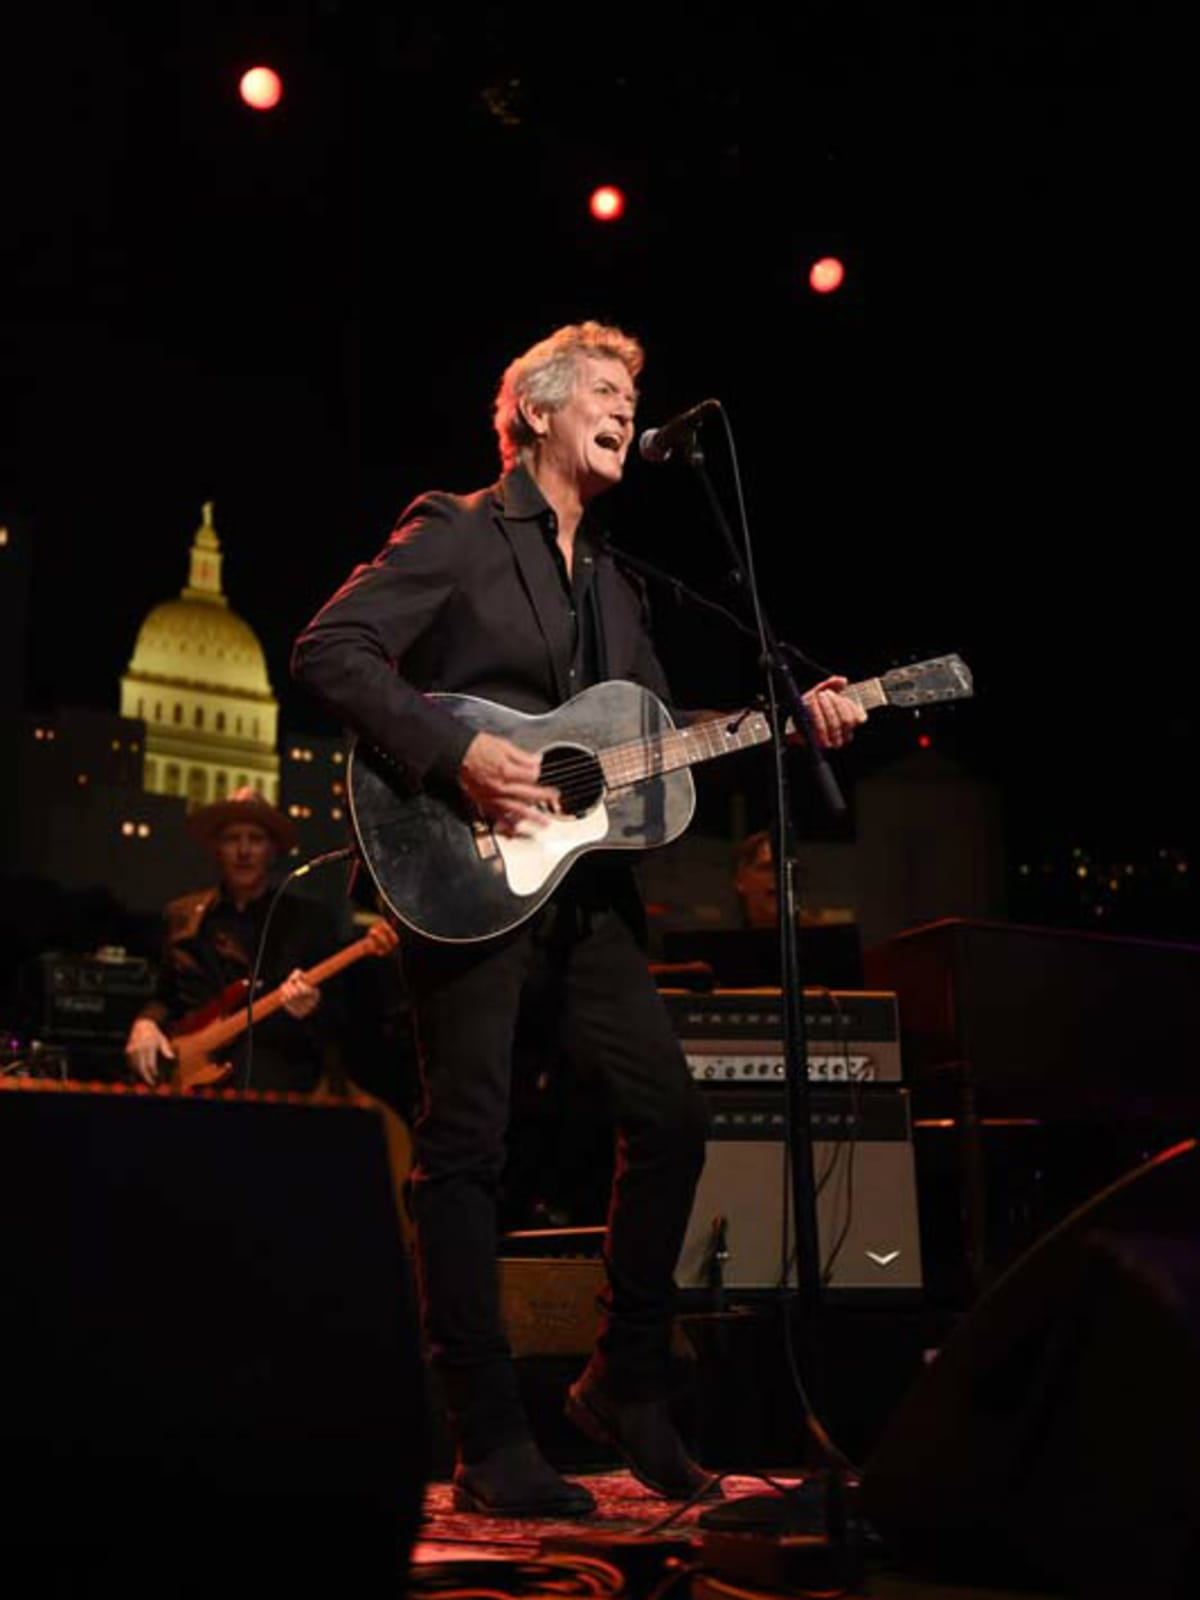 Austin City Limits Hall of Fame induction 2016 Rodney Crowell